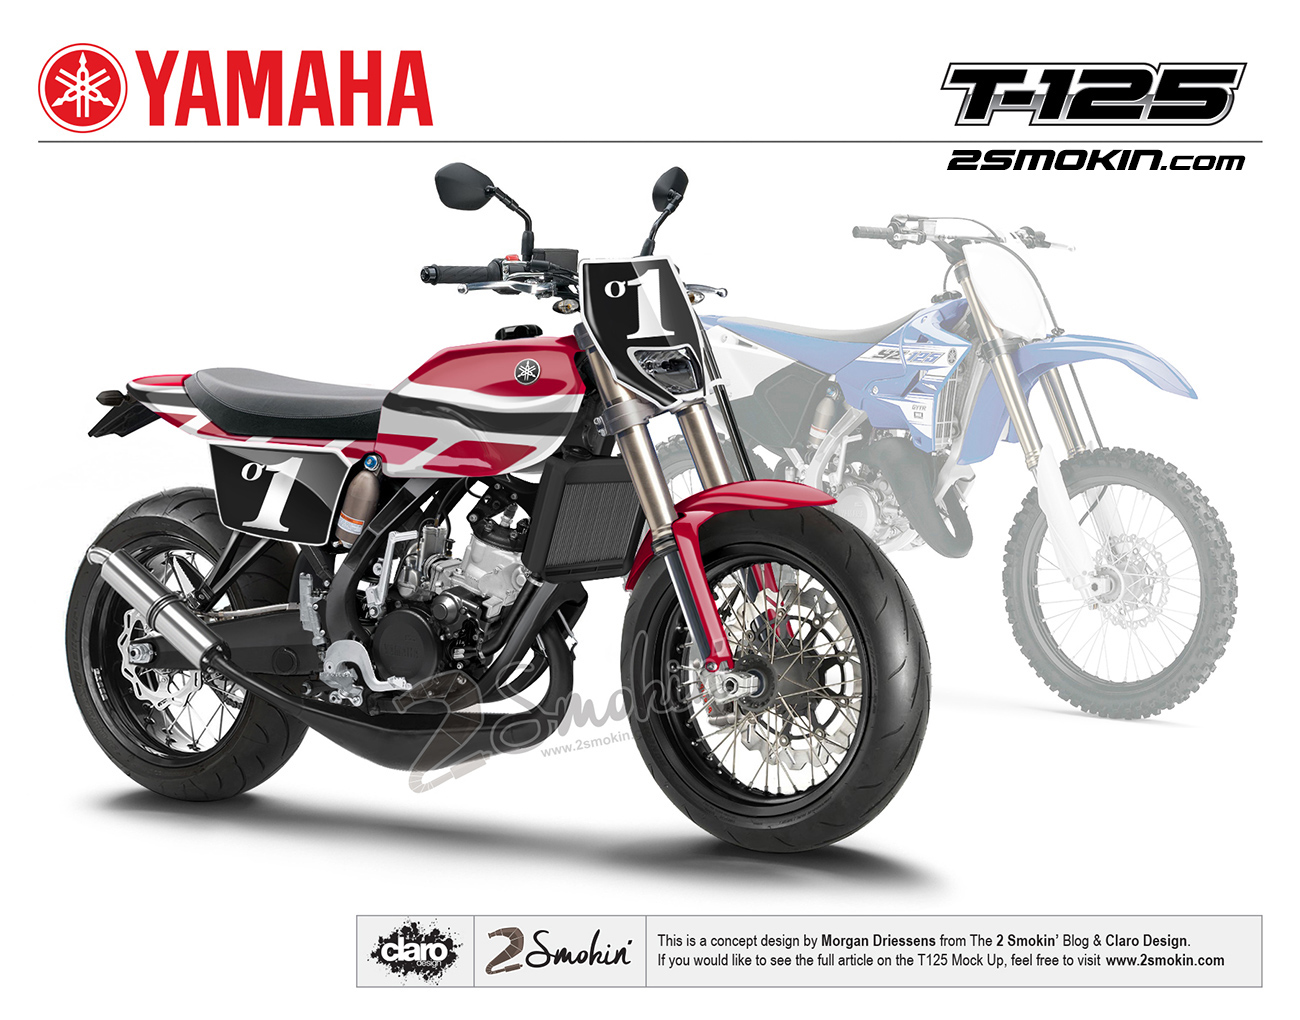 The Yamaha T-125 Concept with the YZ125